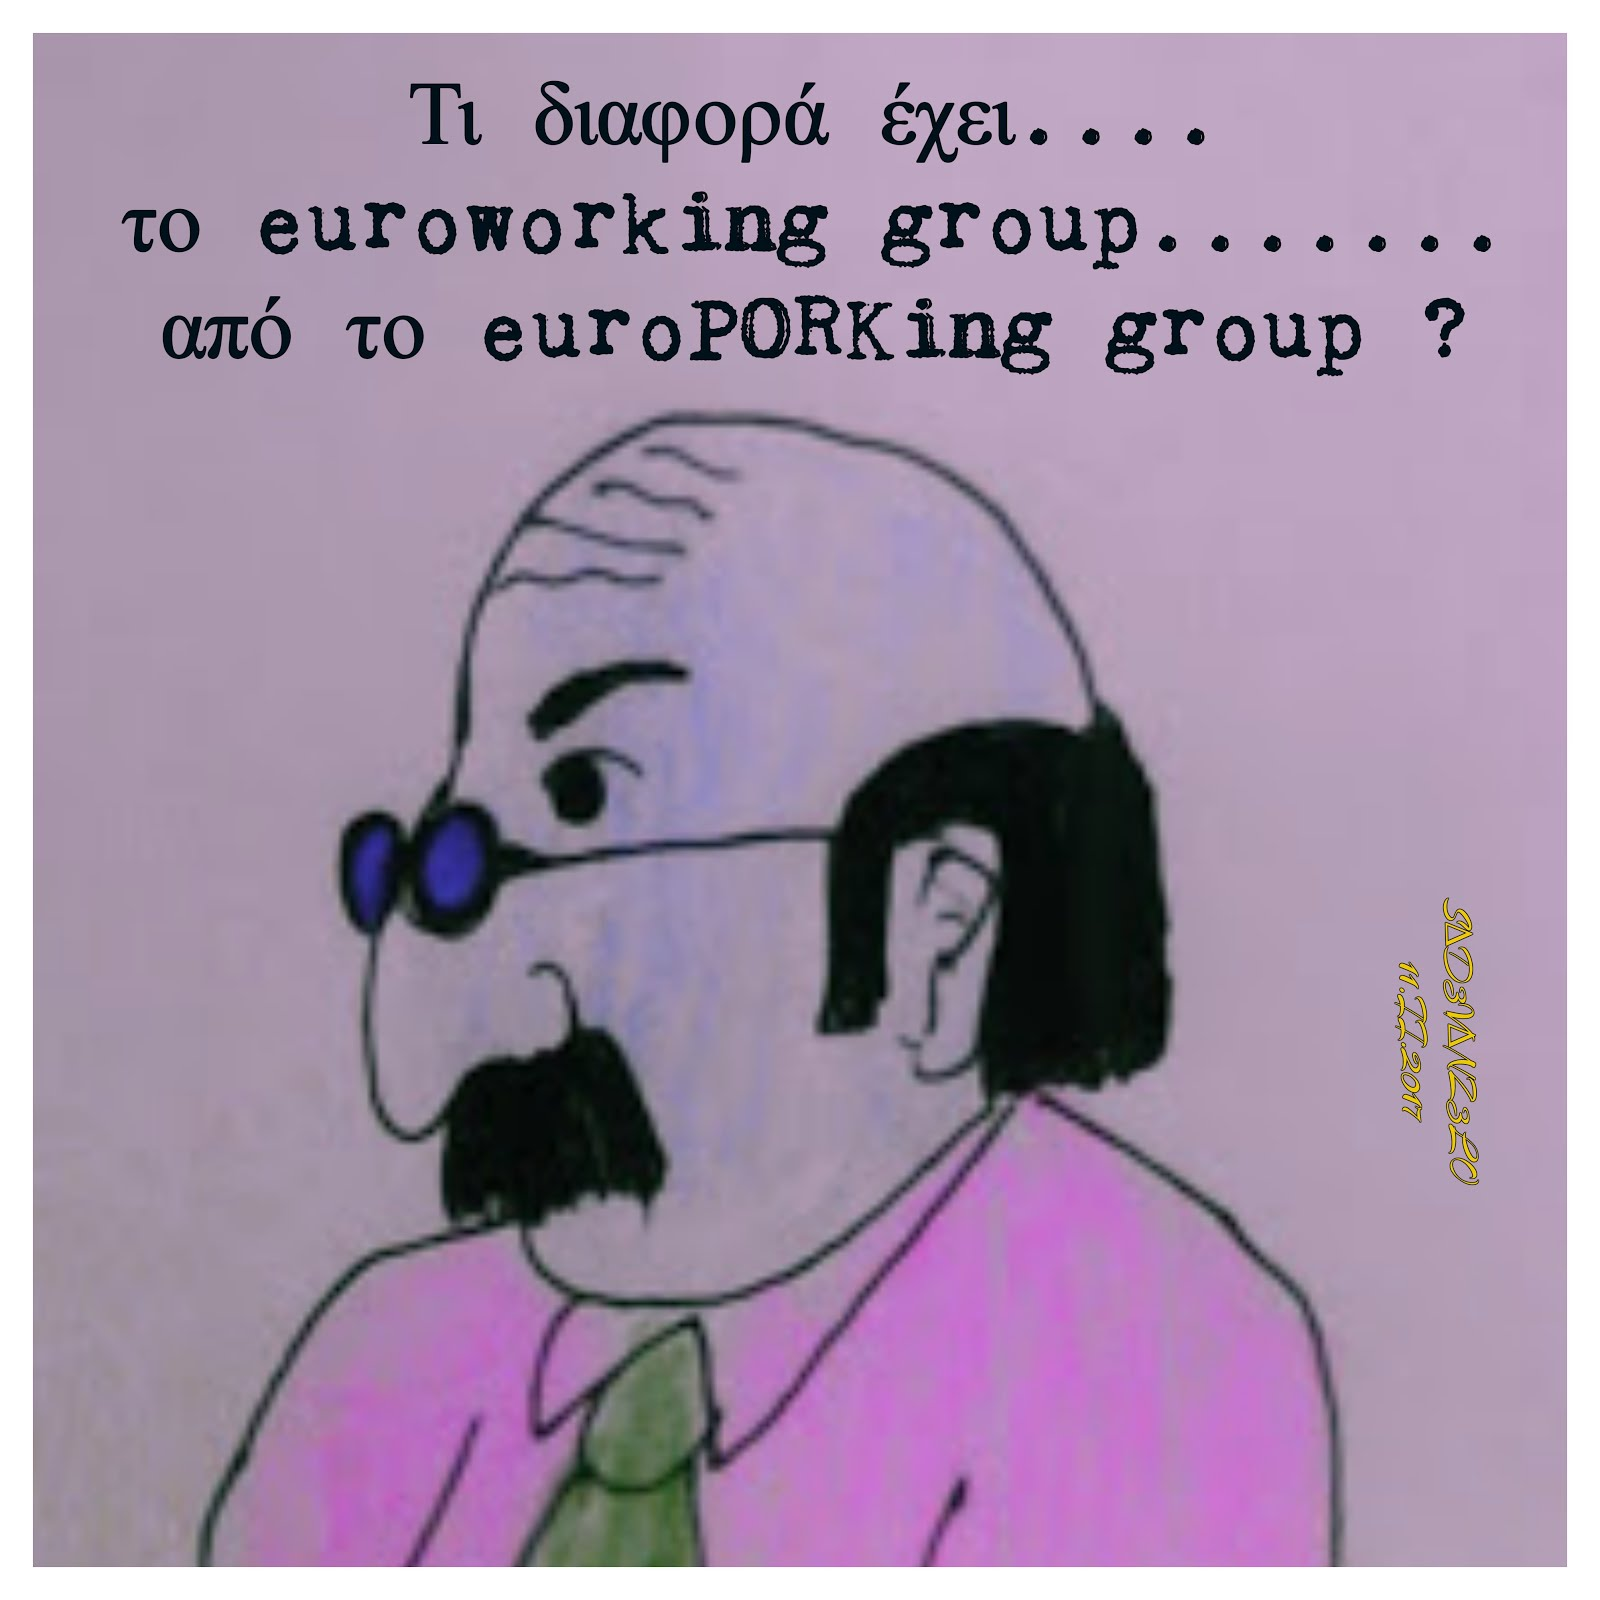 Why euroworking group ?